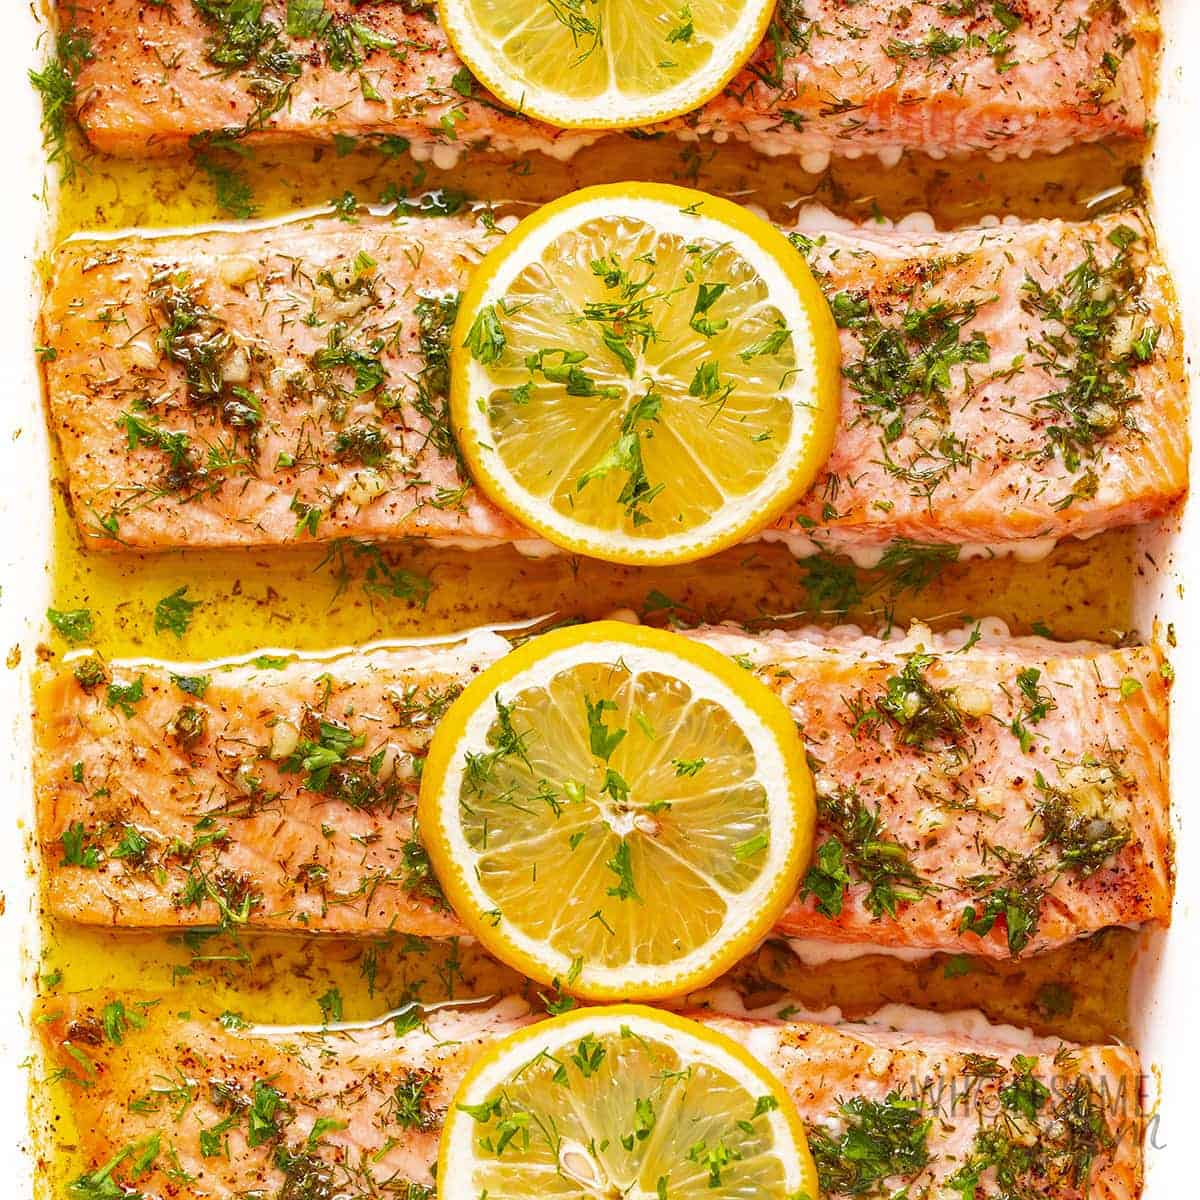 Oven baked salmon in a baking dish